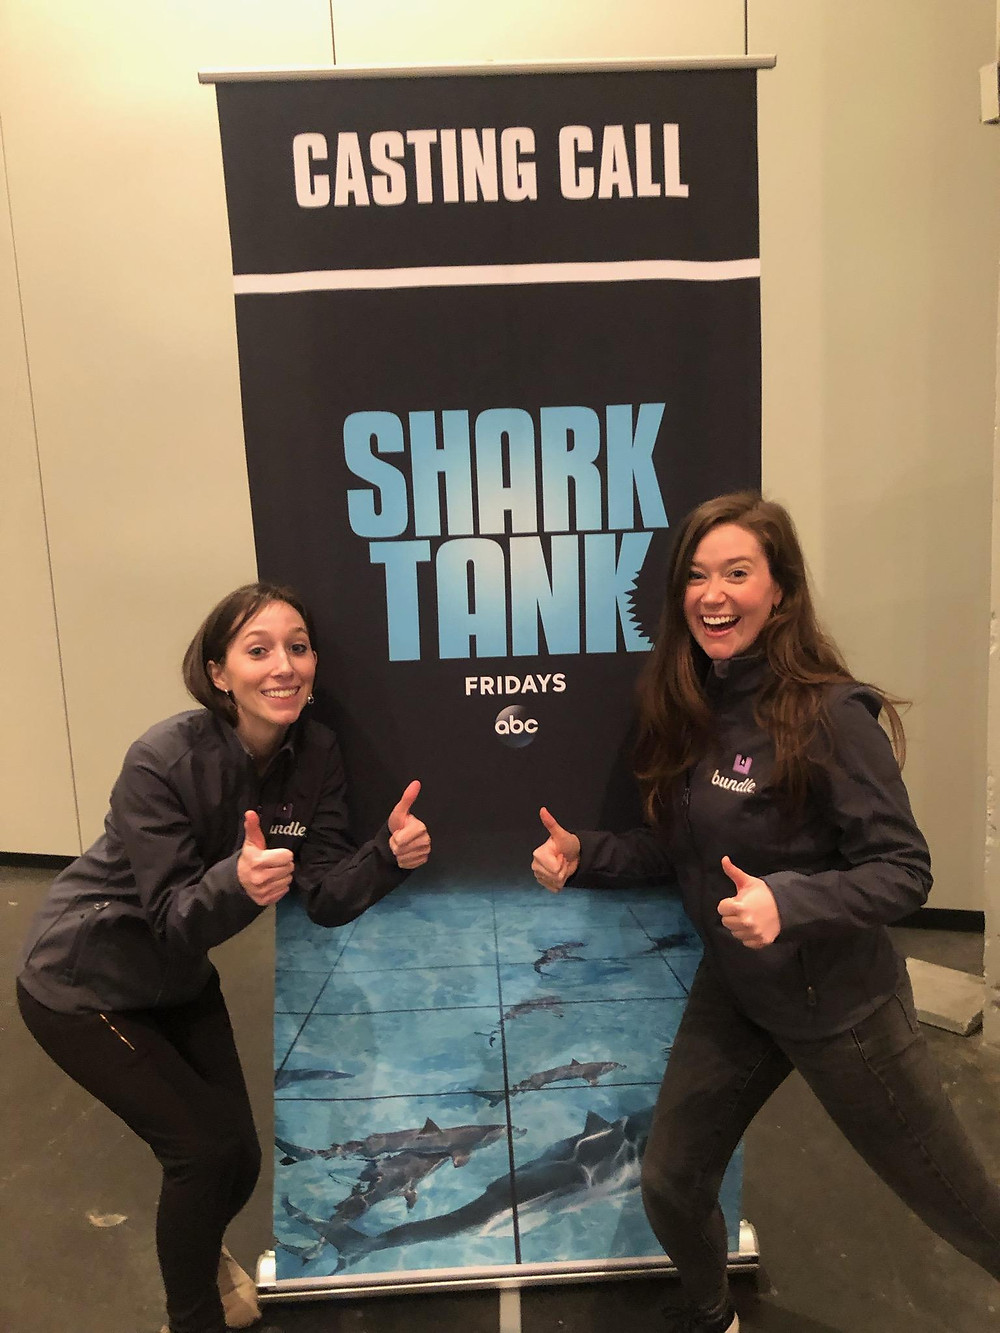 Cassie & Jackie in front of Shark Tank sign.